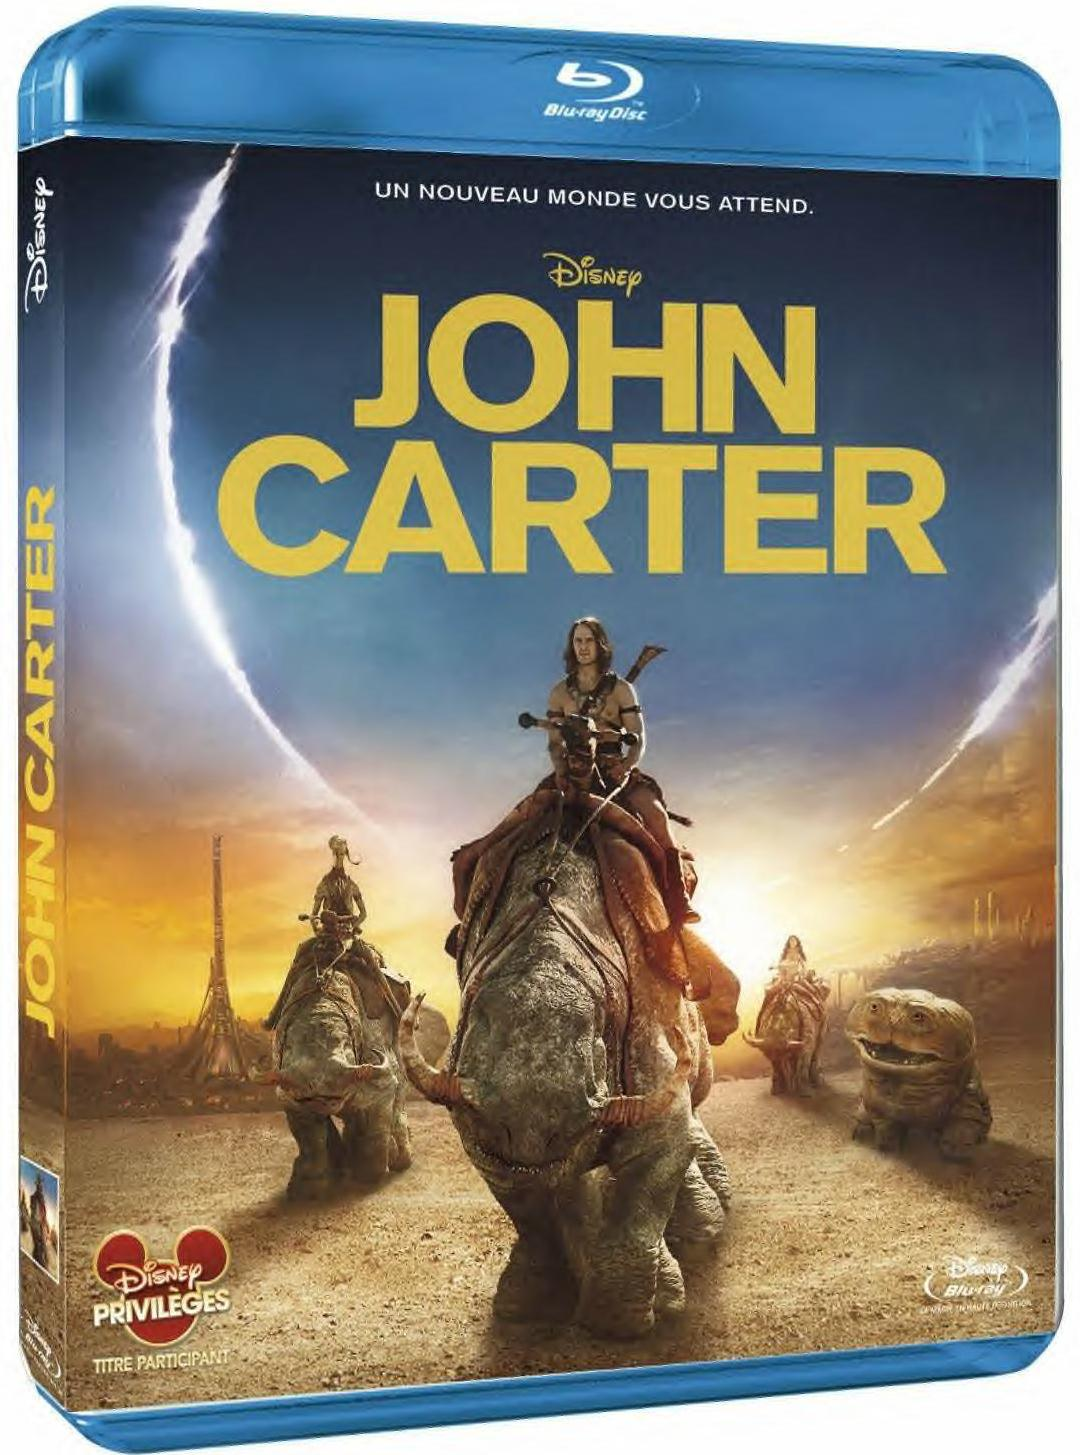 John_Carter_Bluray_French_cover%255B1%255D.JPG